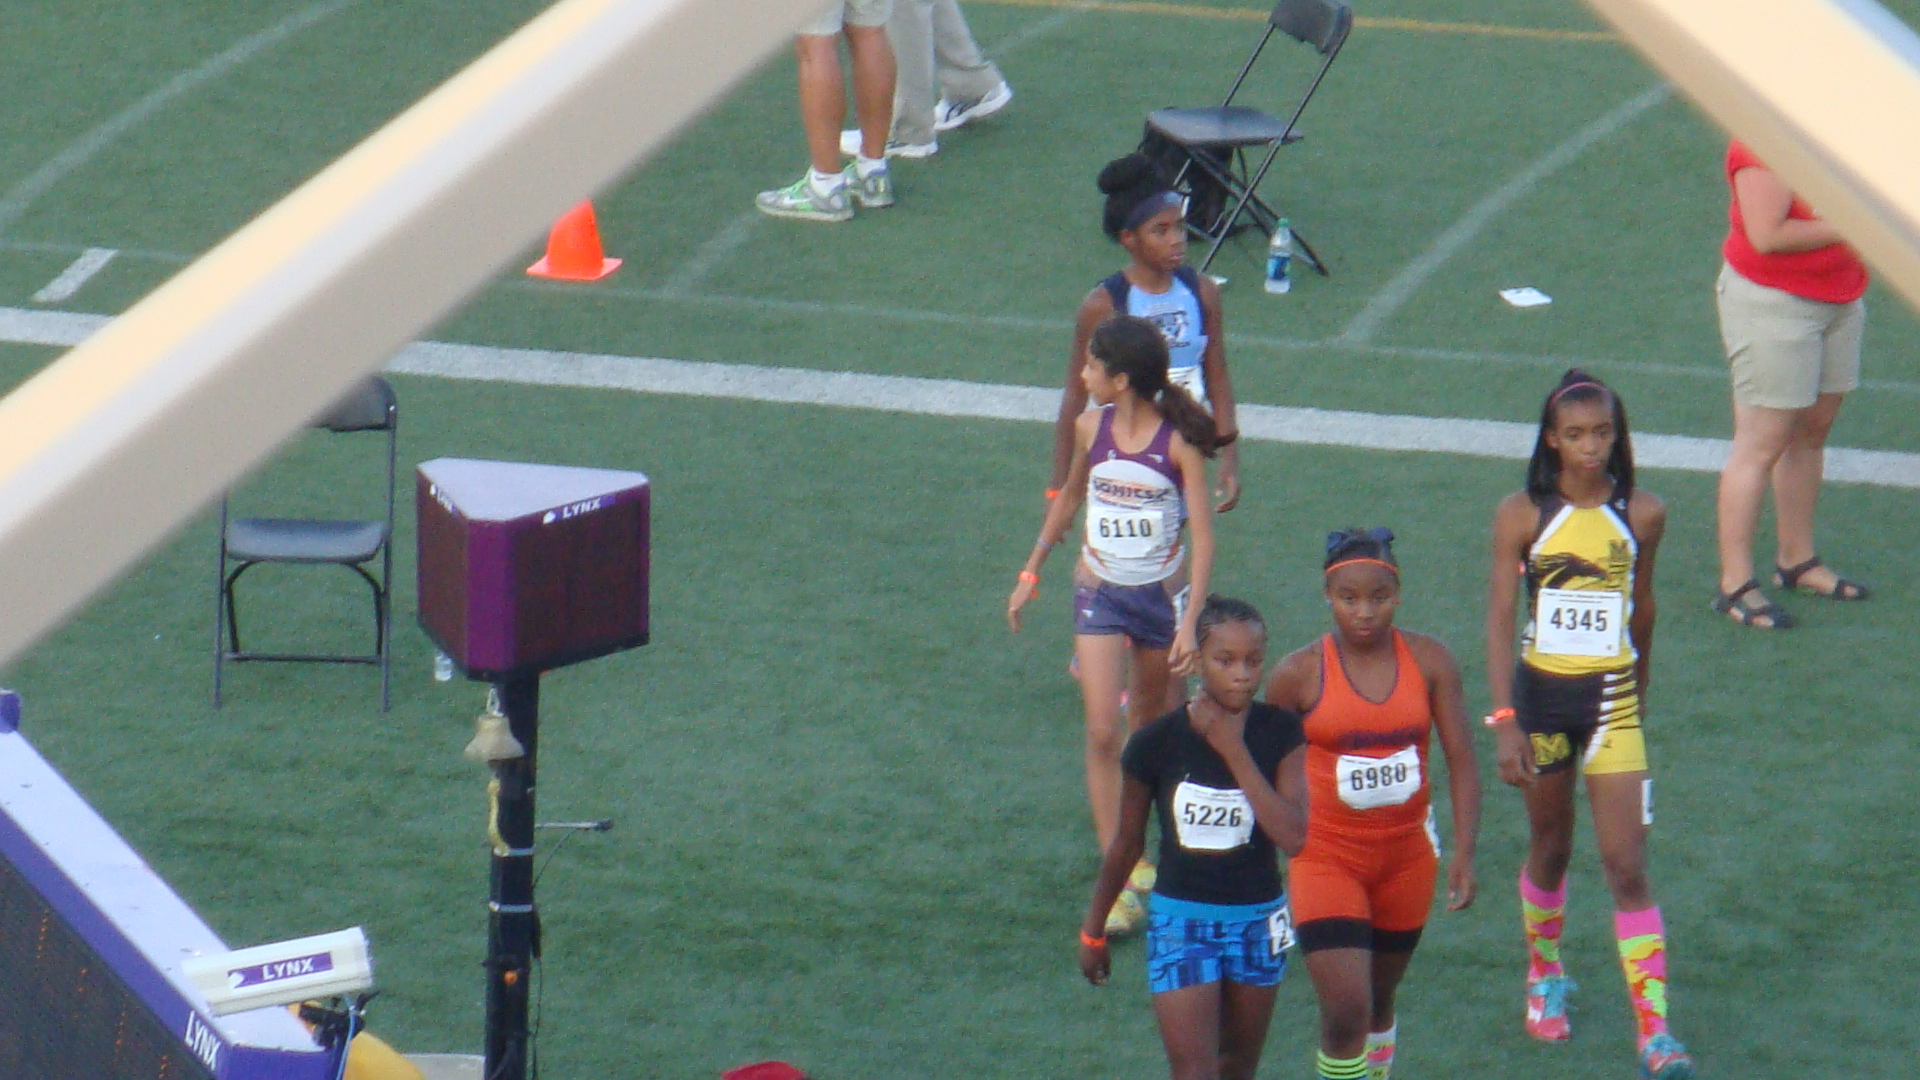 Michelle coming on to the track for the 400m